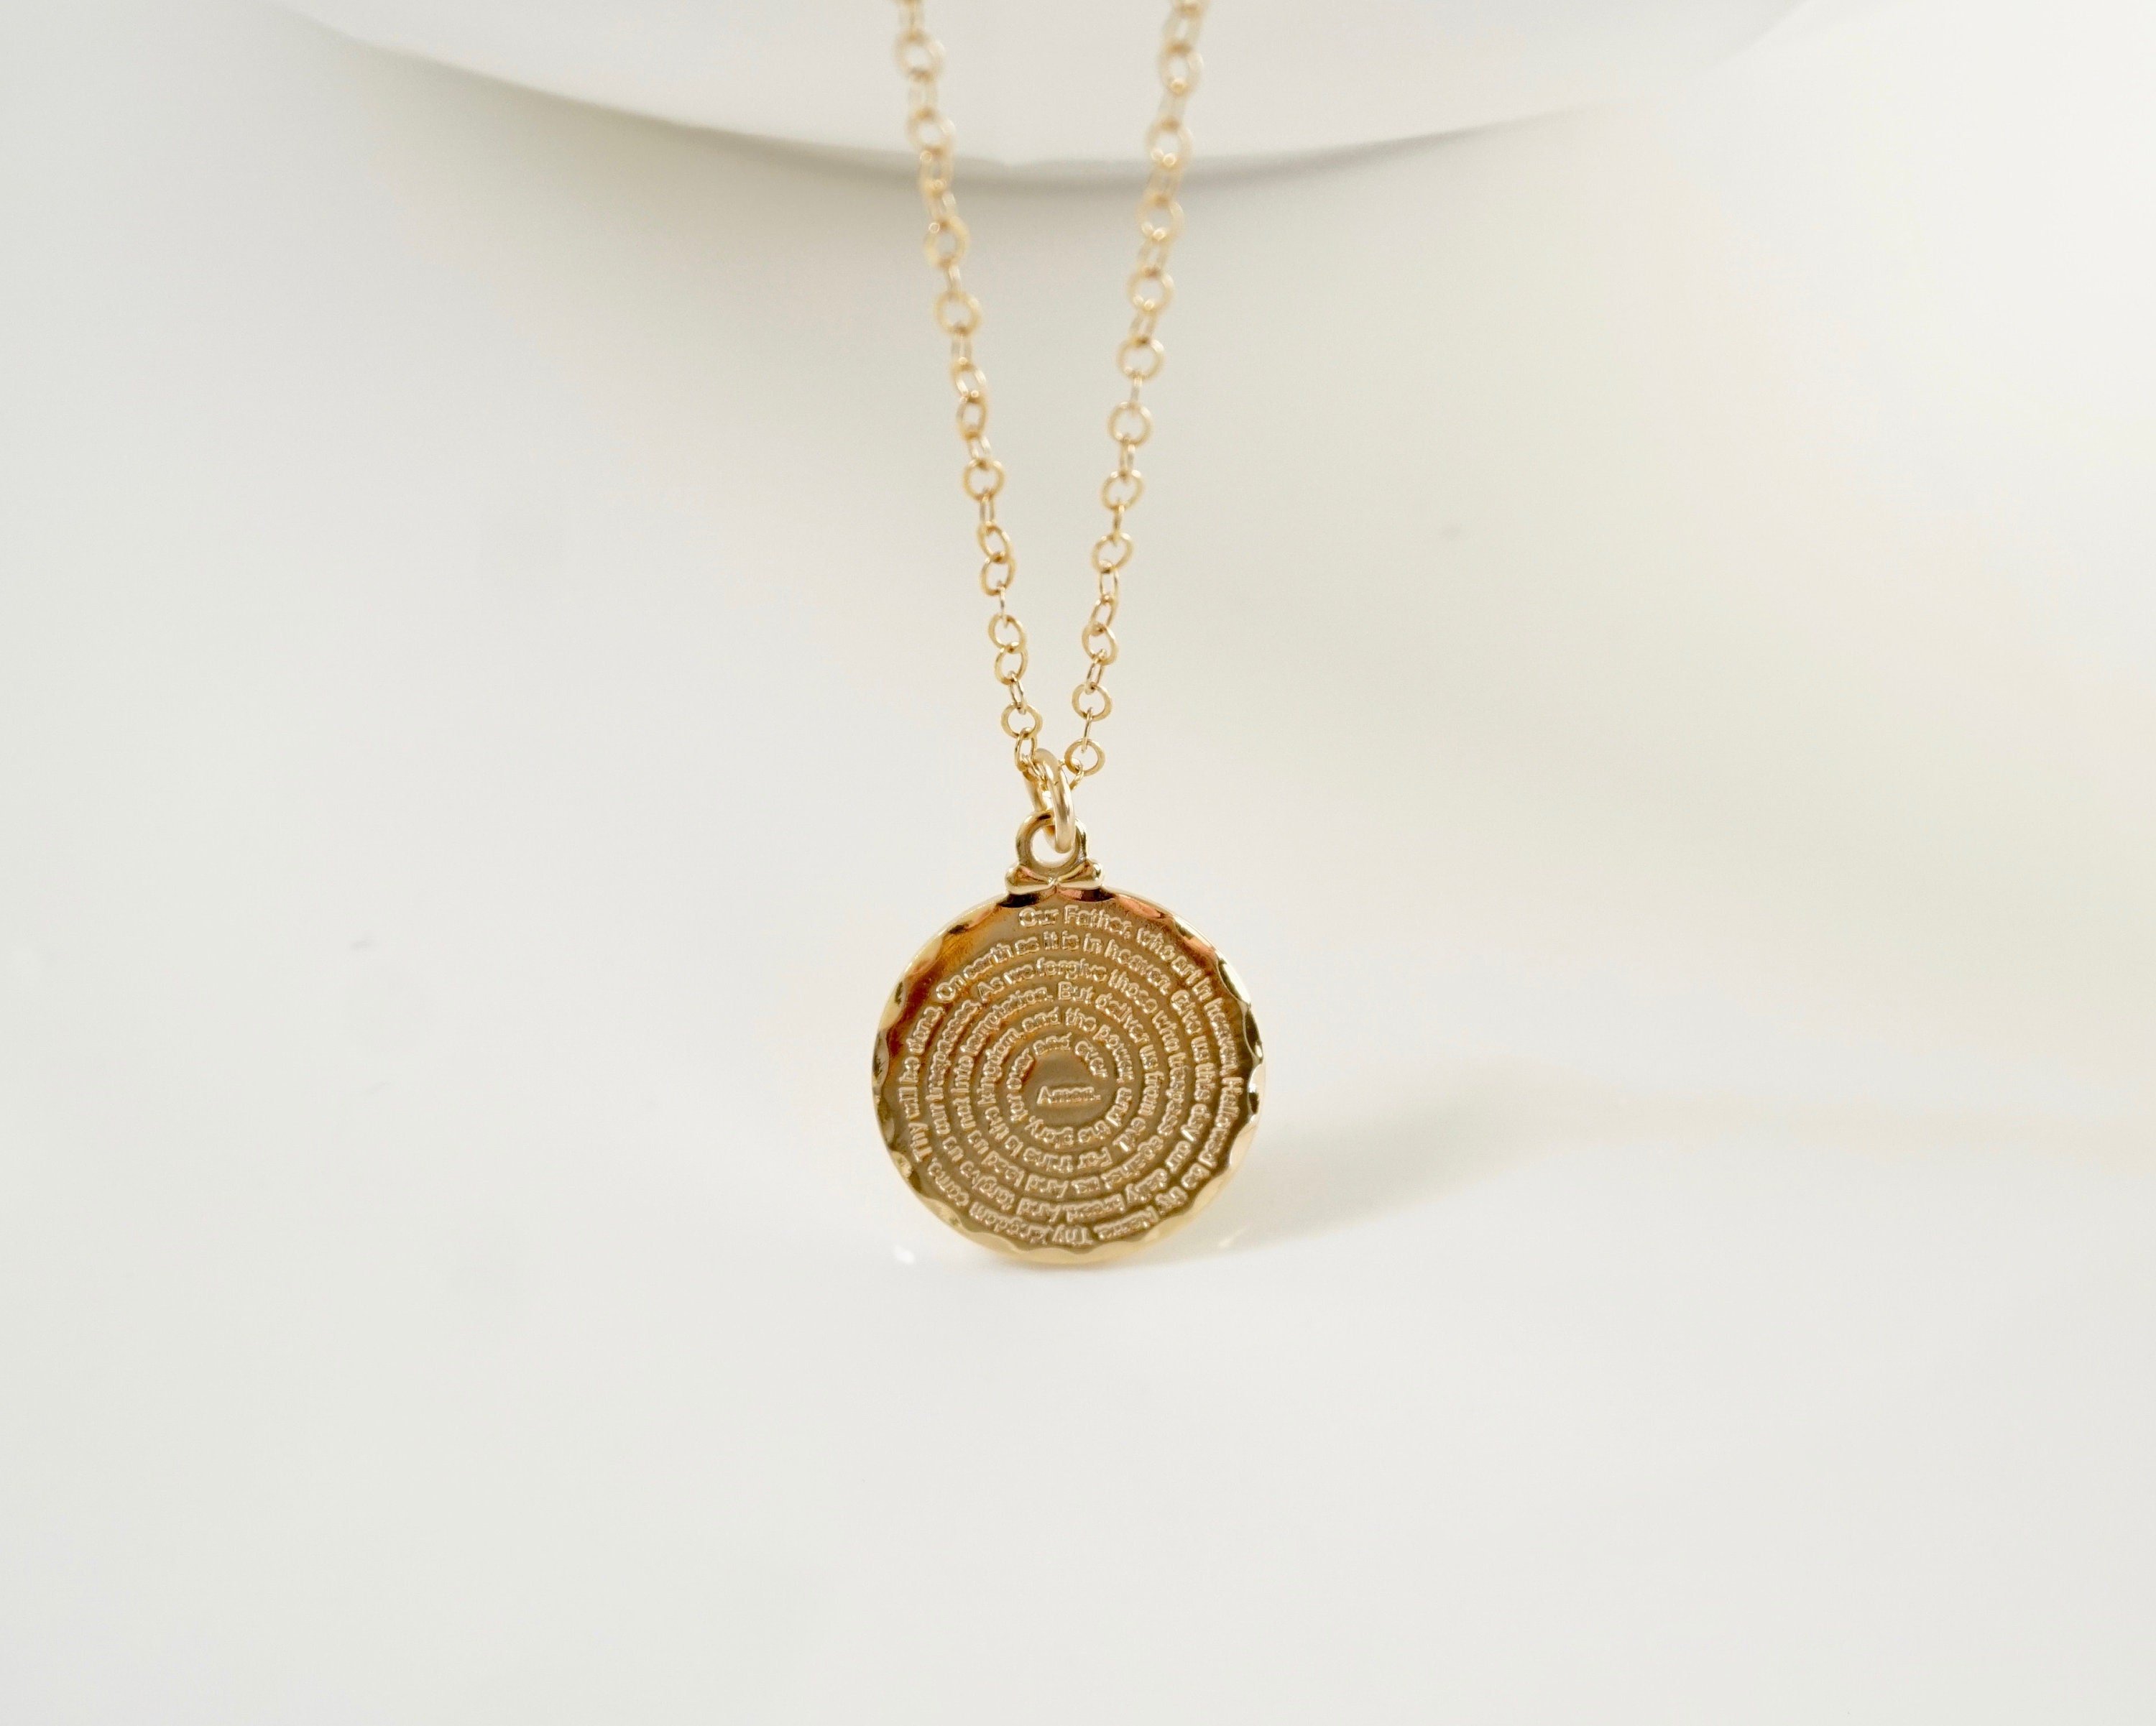 necklace courage pendant dogeared dipped medallion maya angelou gold